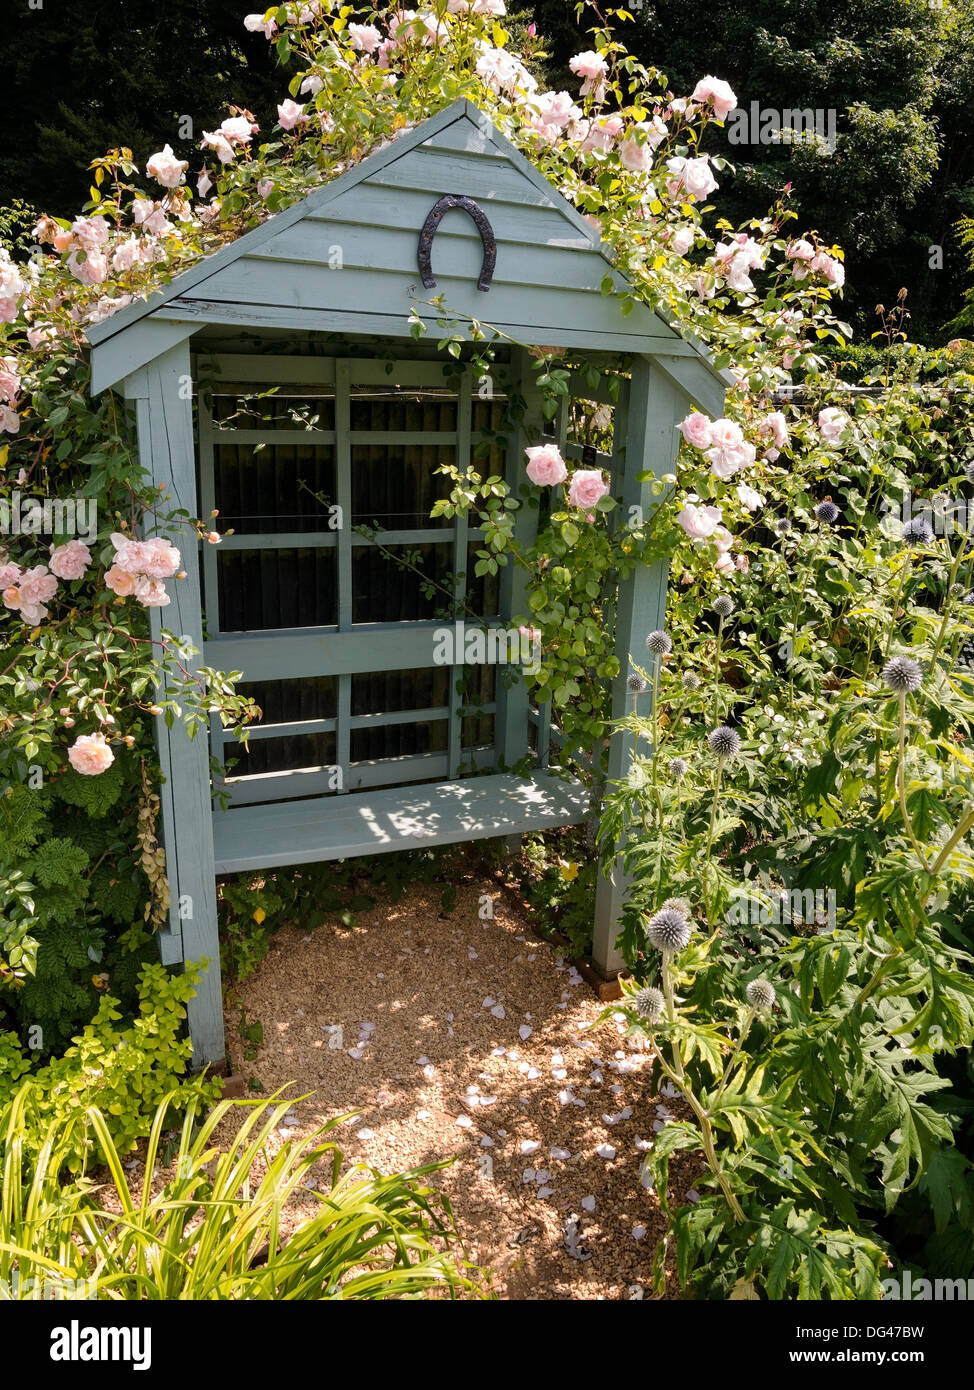 Ornate wooden garden arbor with bench seat and climbing roses in